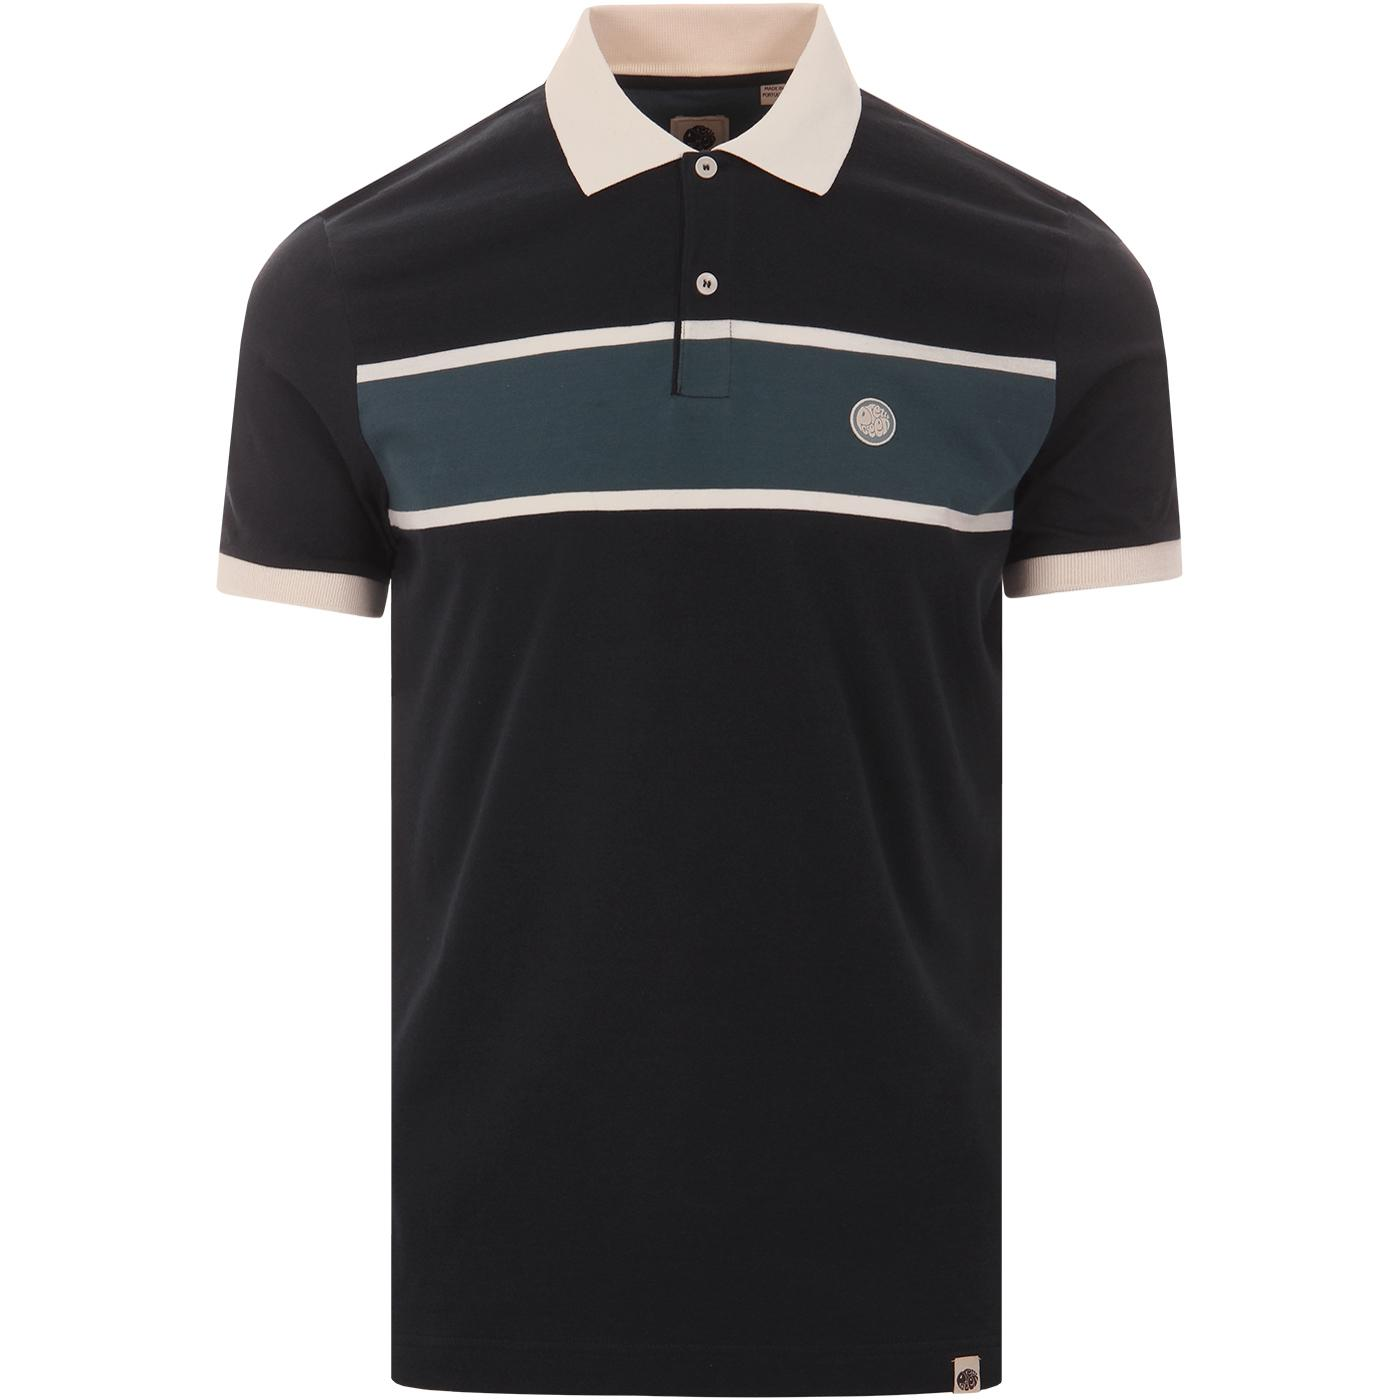 PRETTY GREEN Retro Mod Chest Stripe Polo Top NAVY